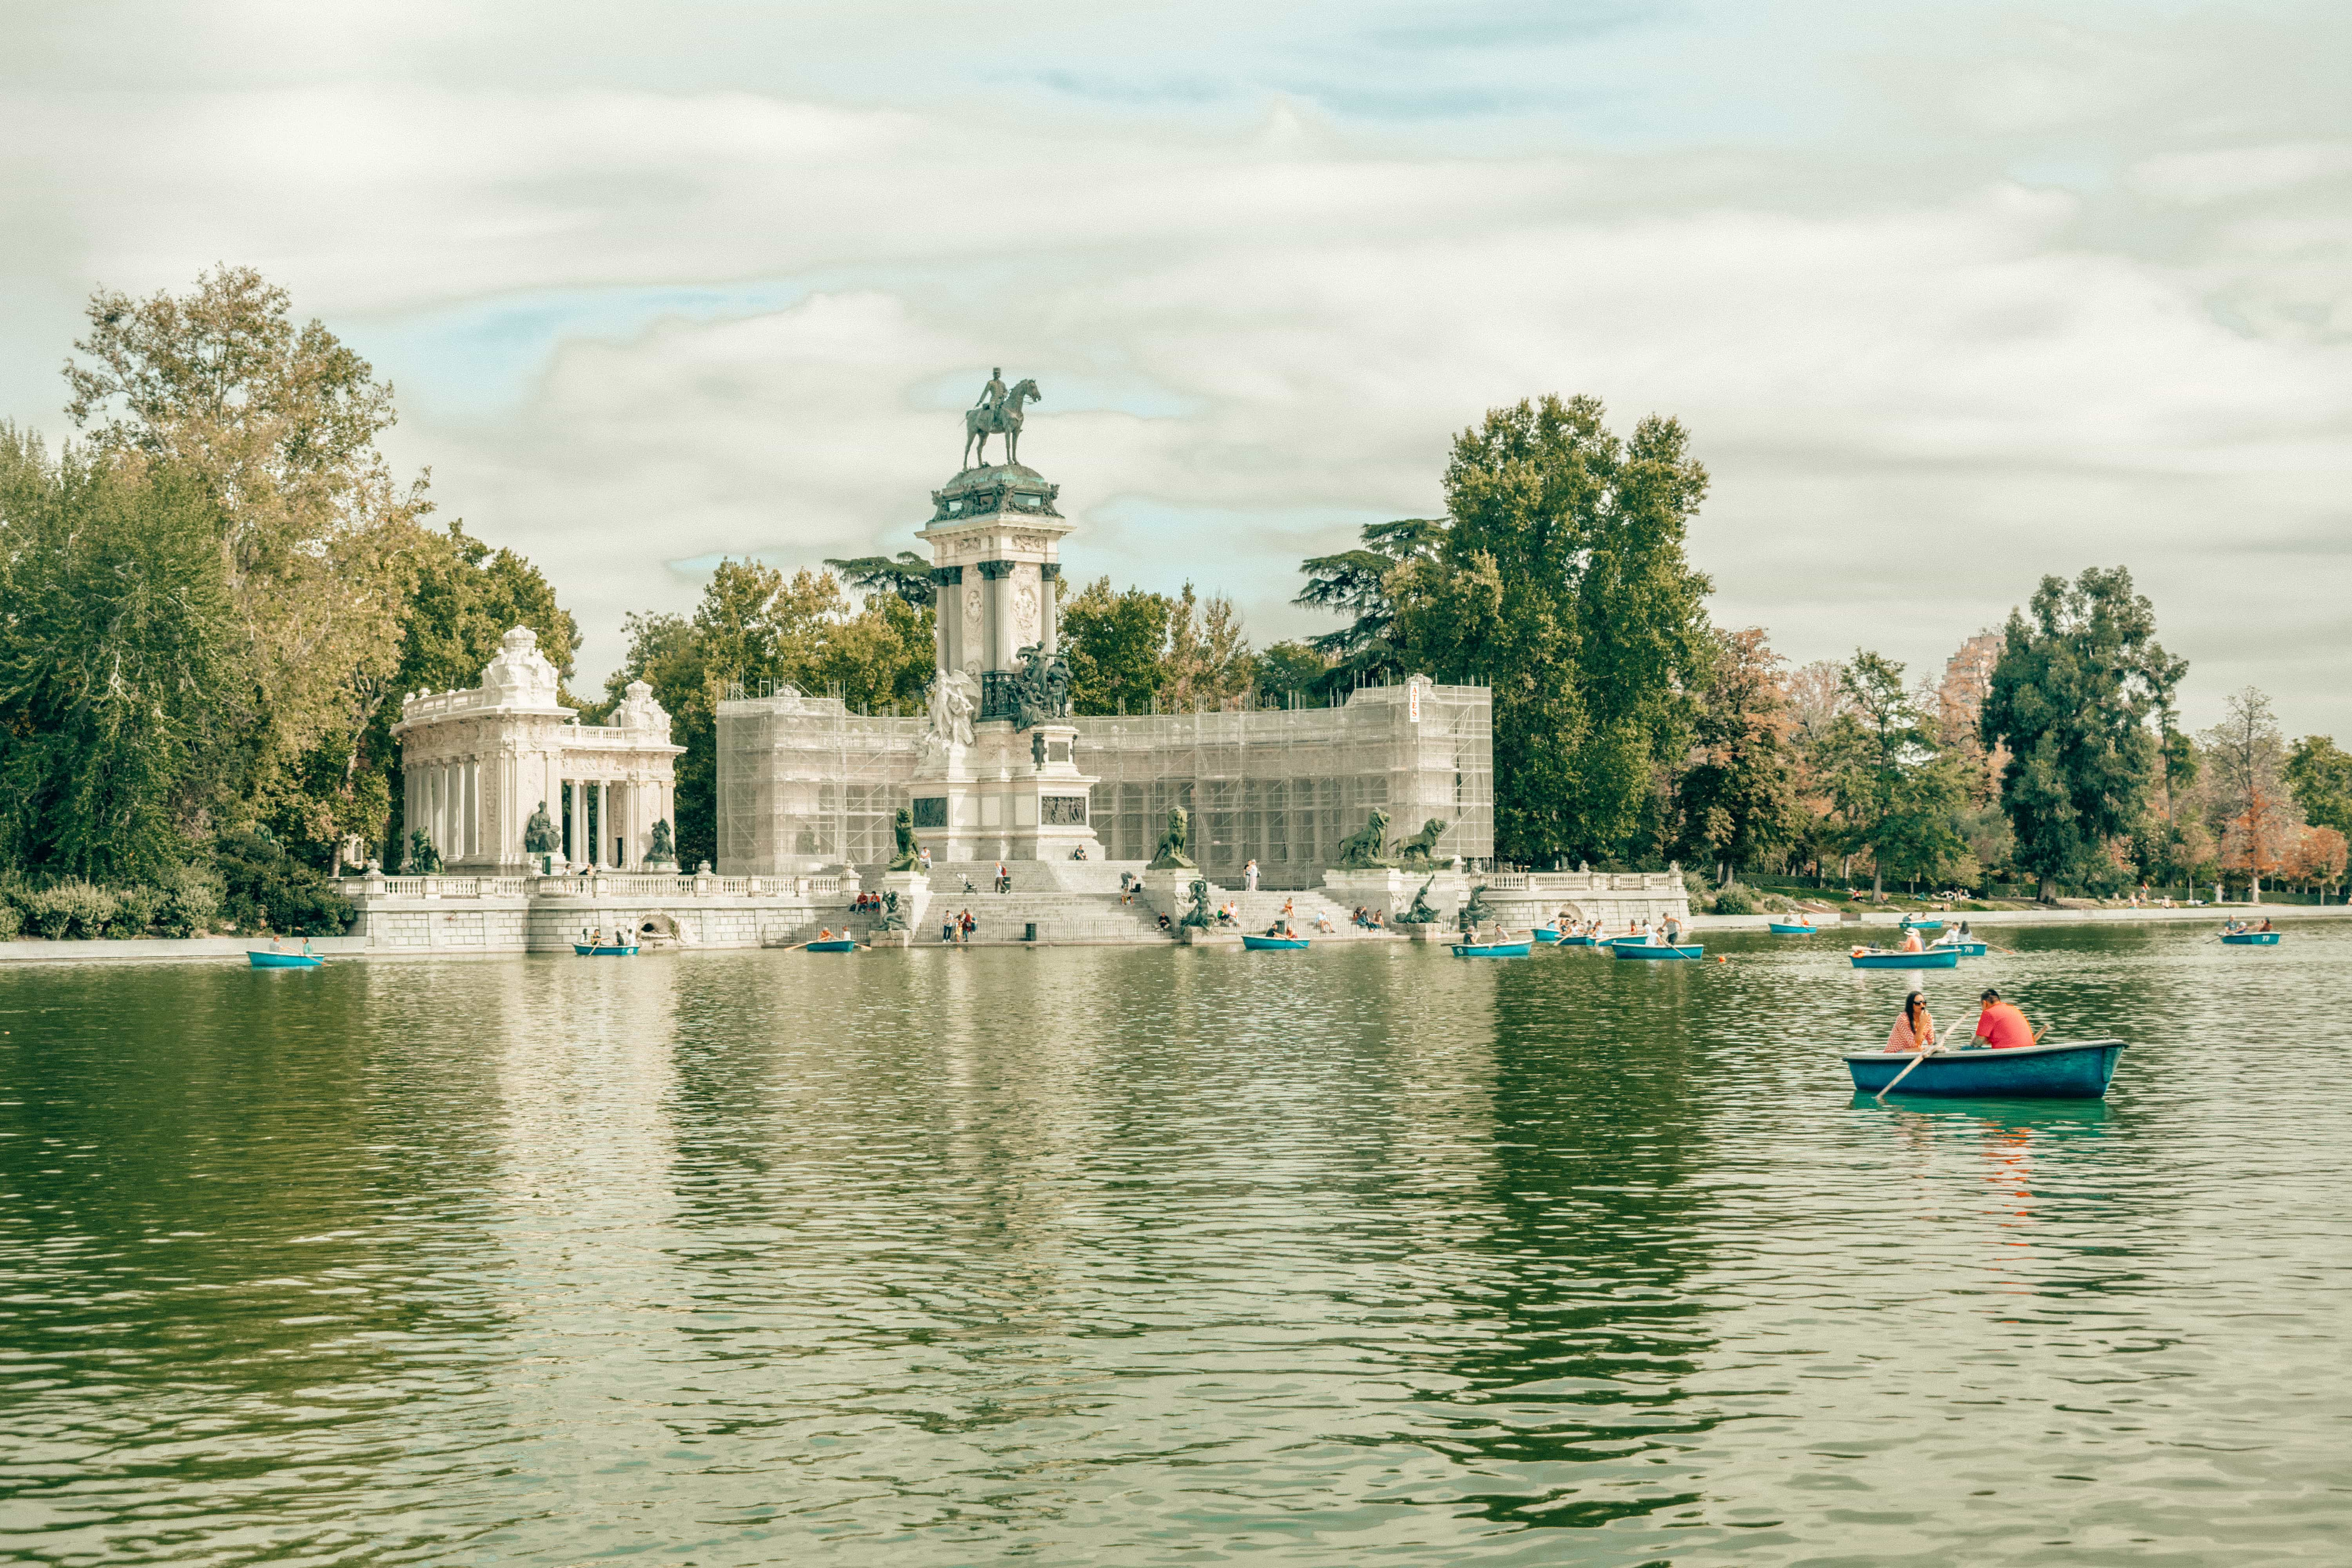 Retiro Park in Madrid, places to visit in Madrid, things to do in Madrid, Madrid travel guide